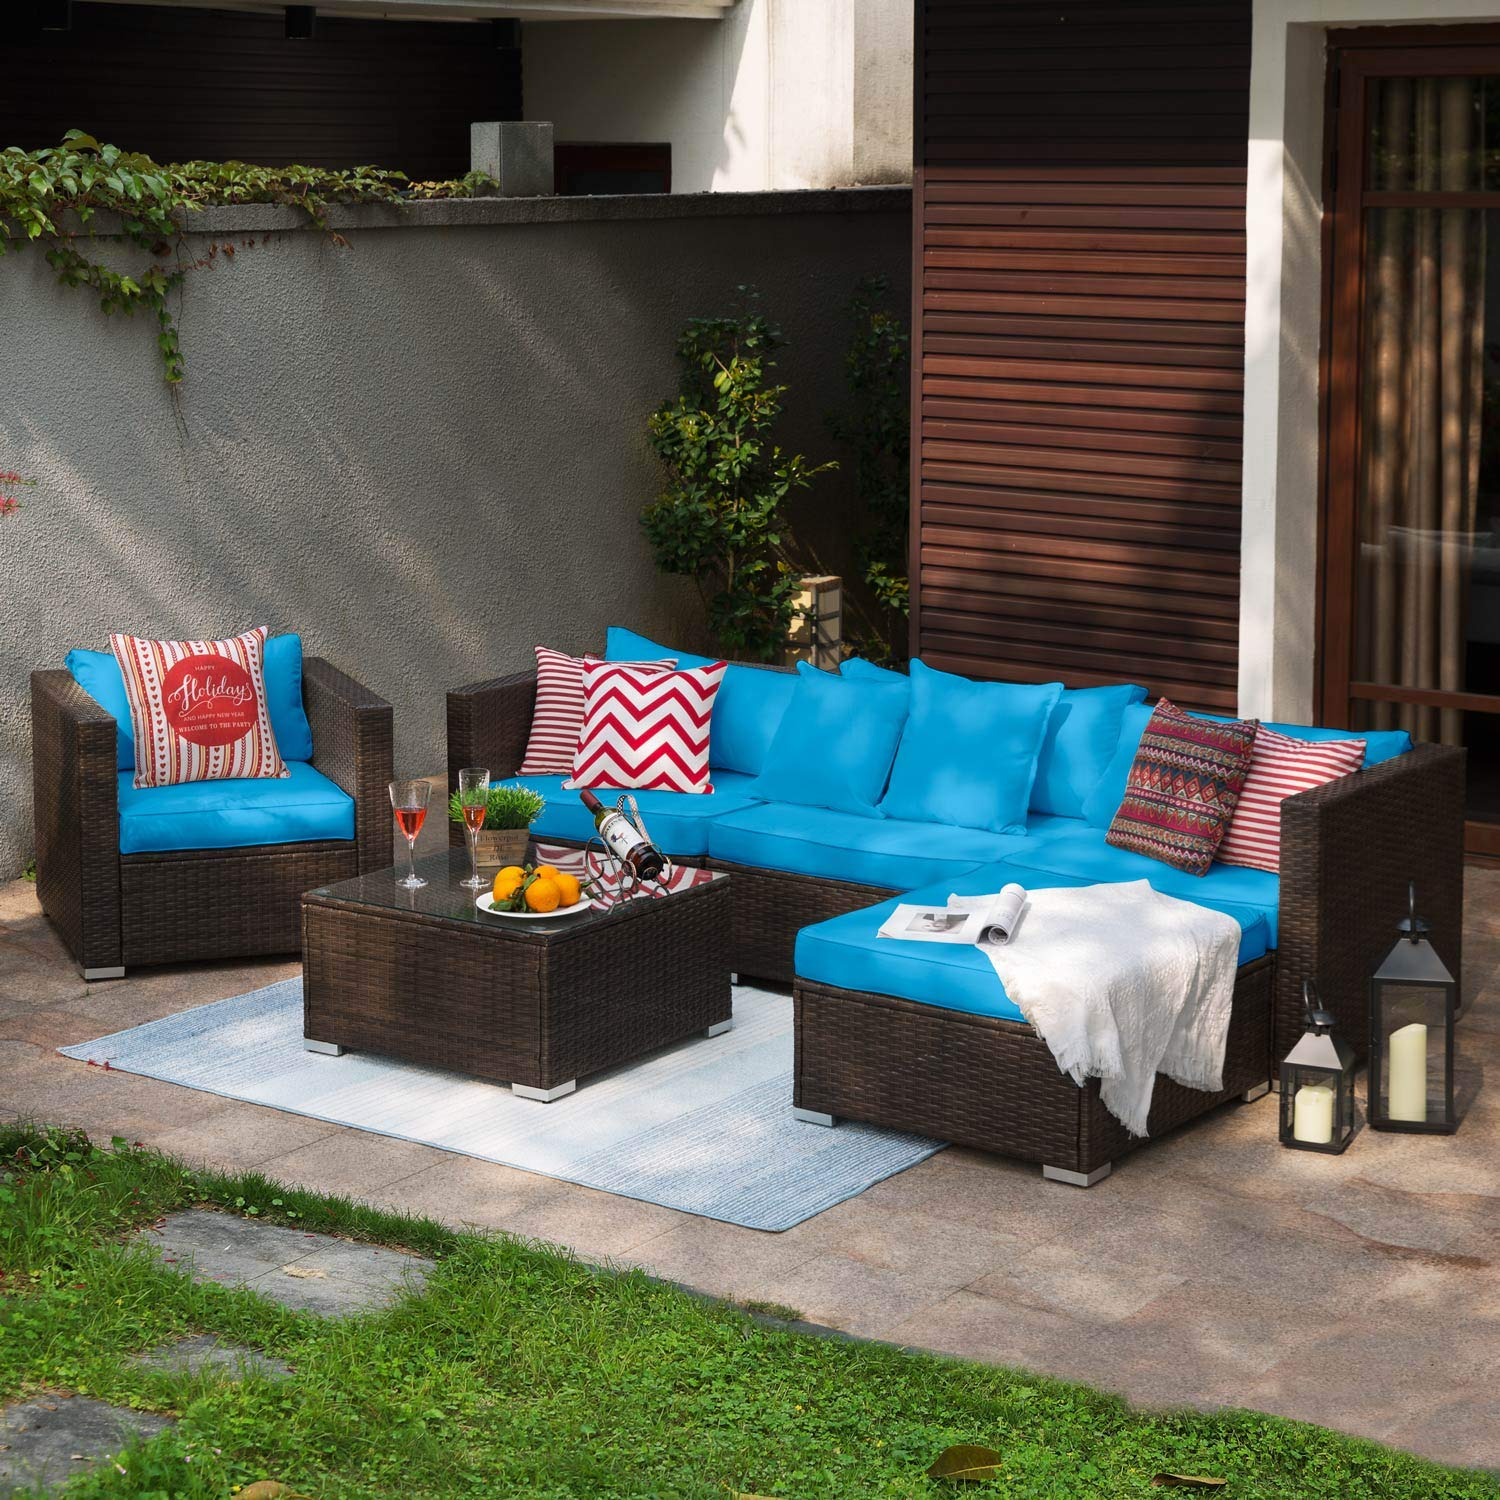 Tribesigns 6 Pieces Patio Furniture Sofa Set, Outdoor Conversation Sectional Sofa Set with PE Rattan & Water-Proof Couch Cushion for Garden, Lawn, Backyard or Poolside (Blue) by Tribesigns